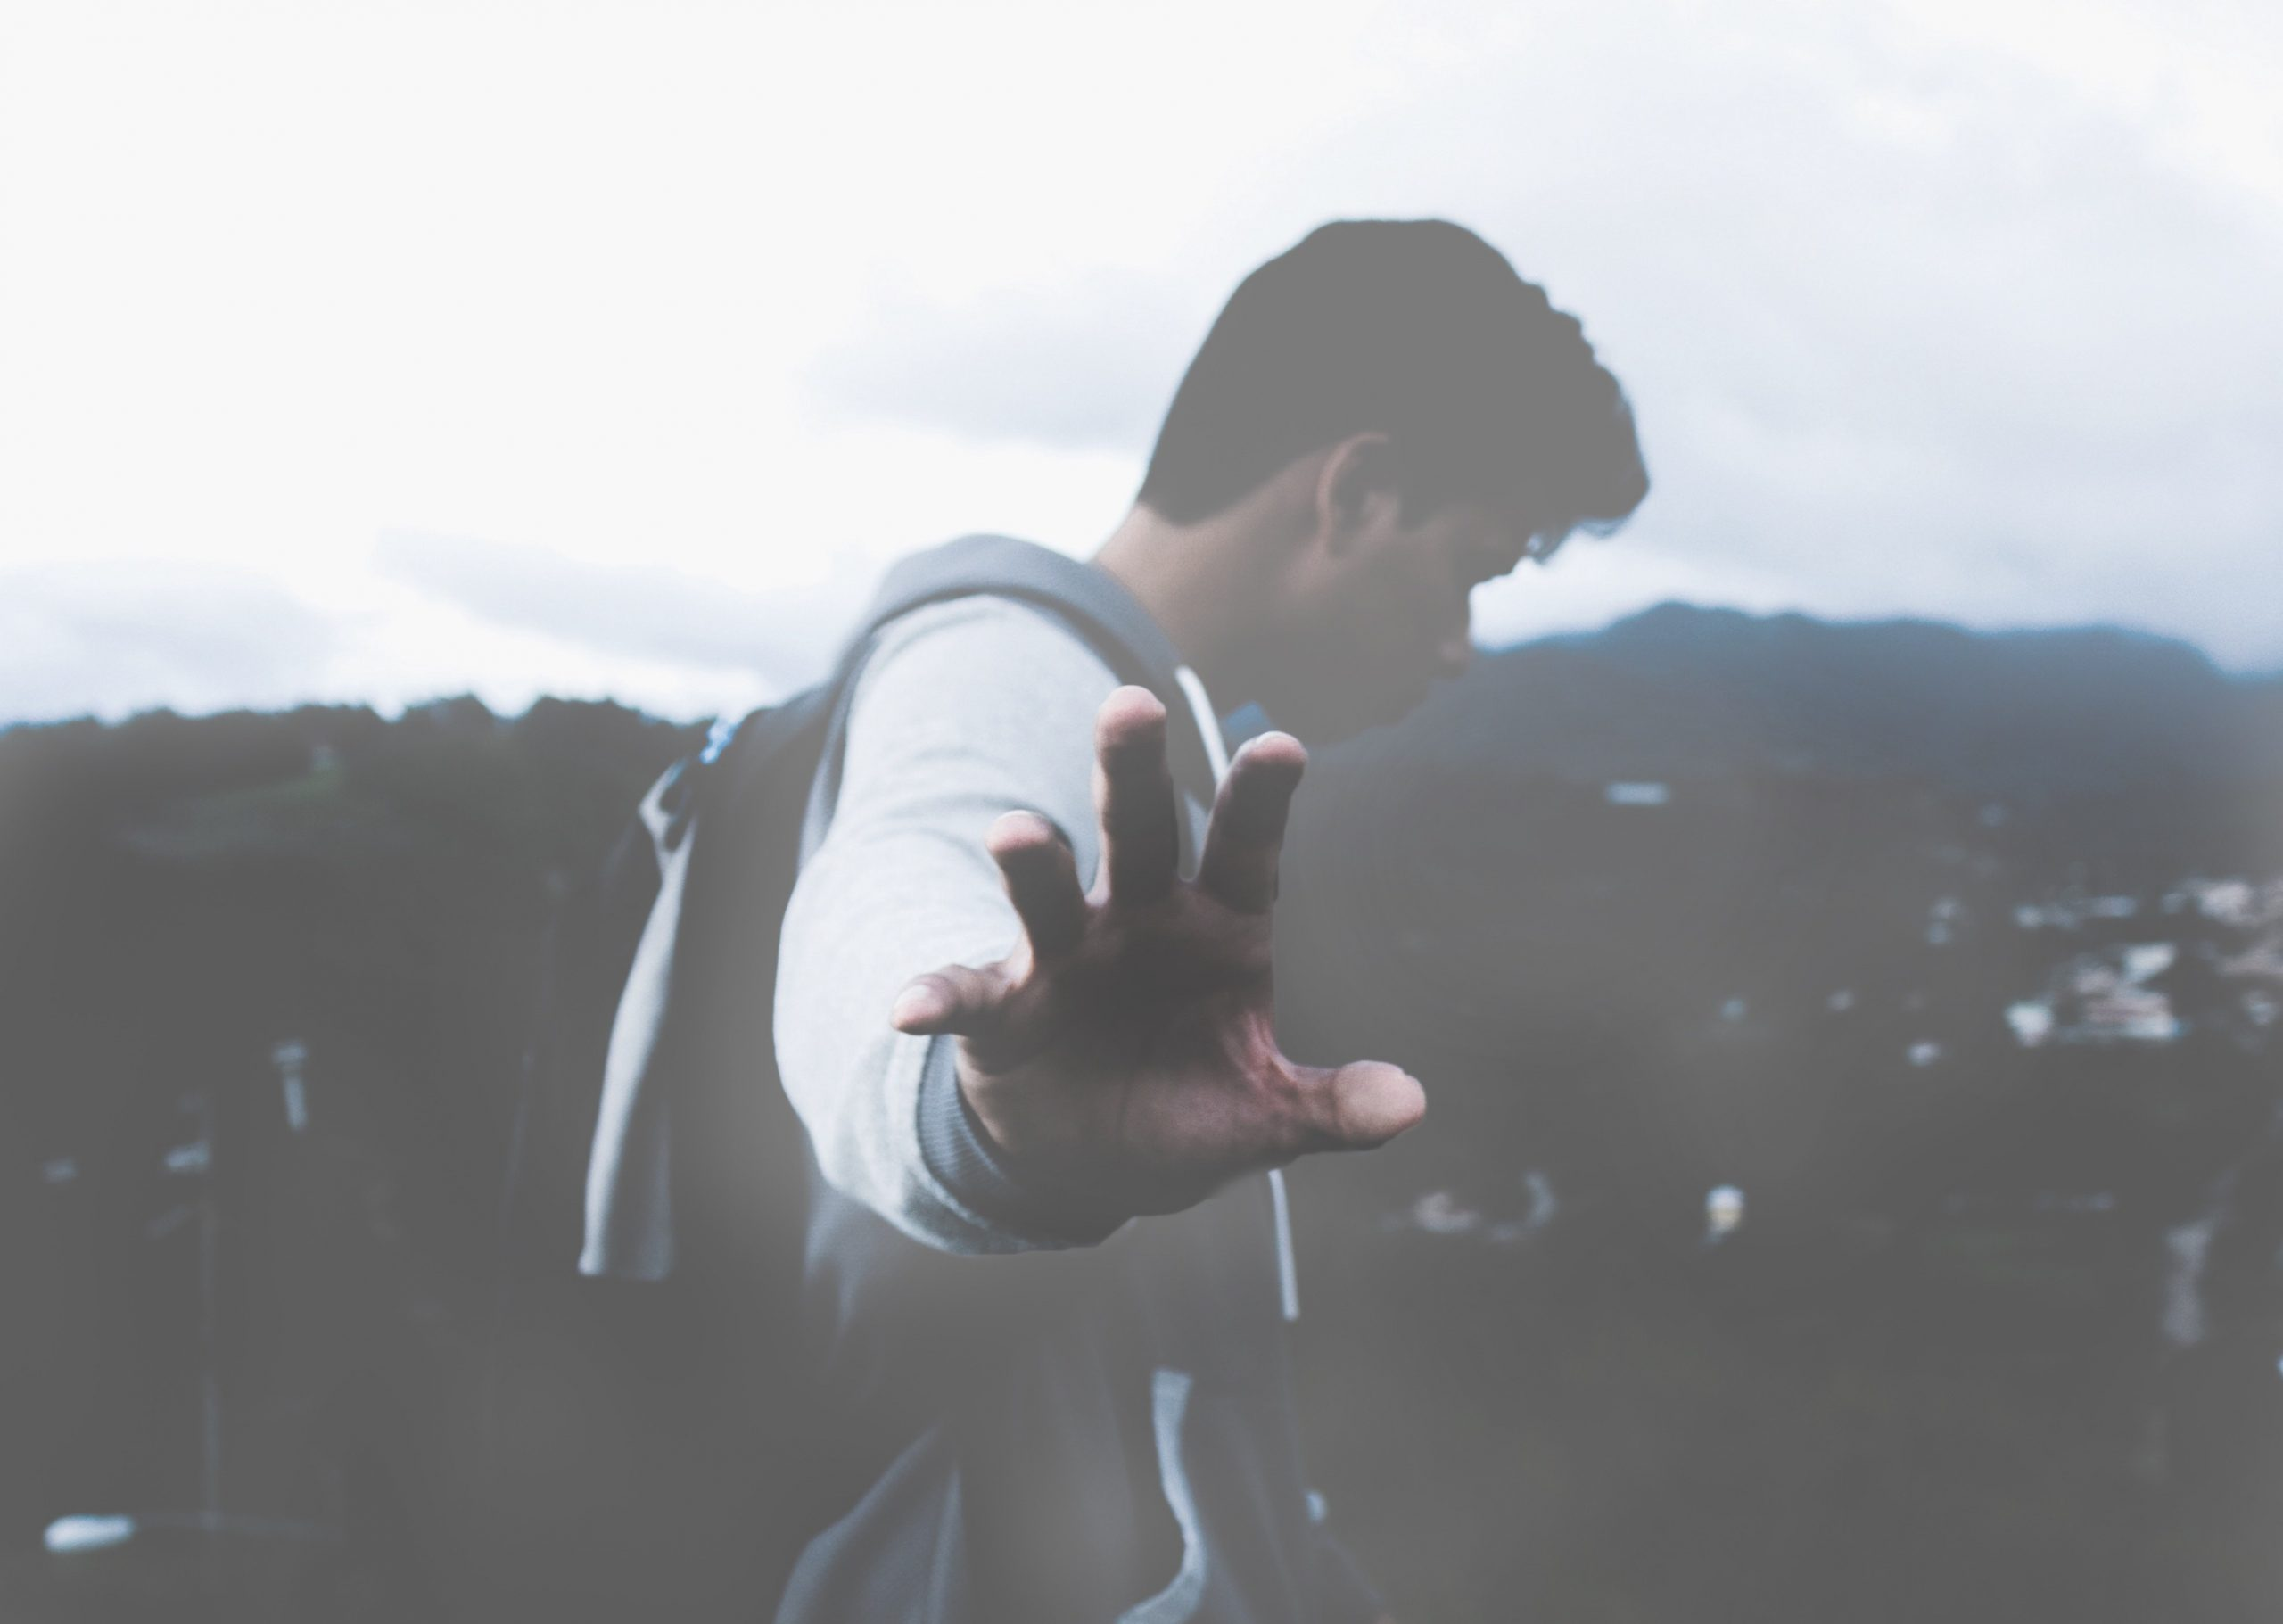 Why we live with individuals who hurt us